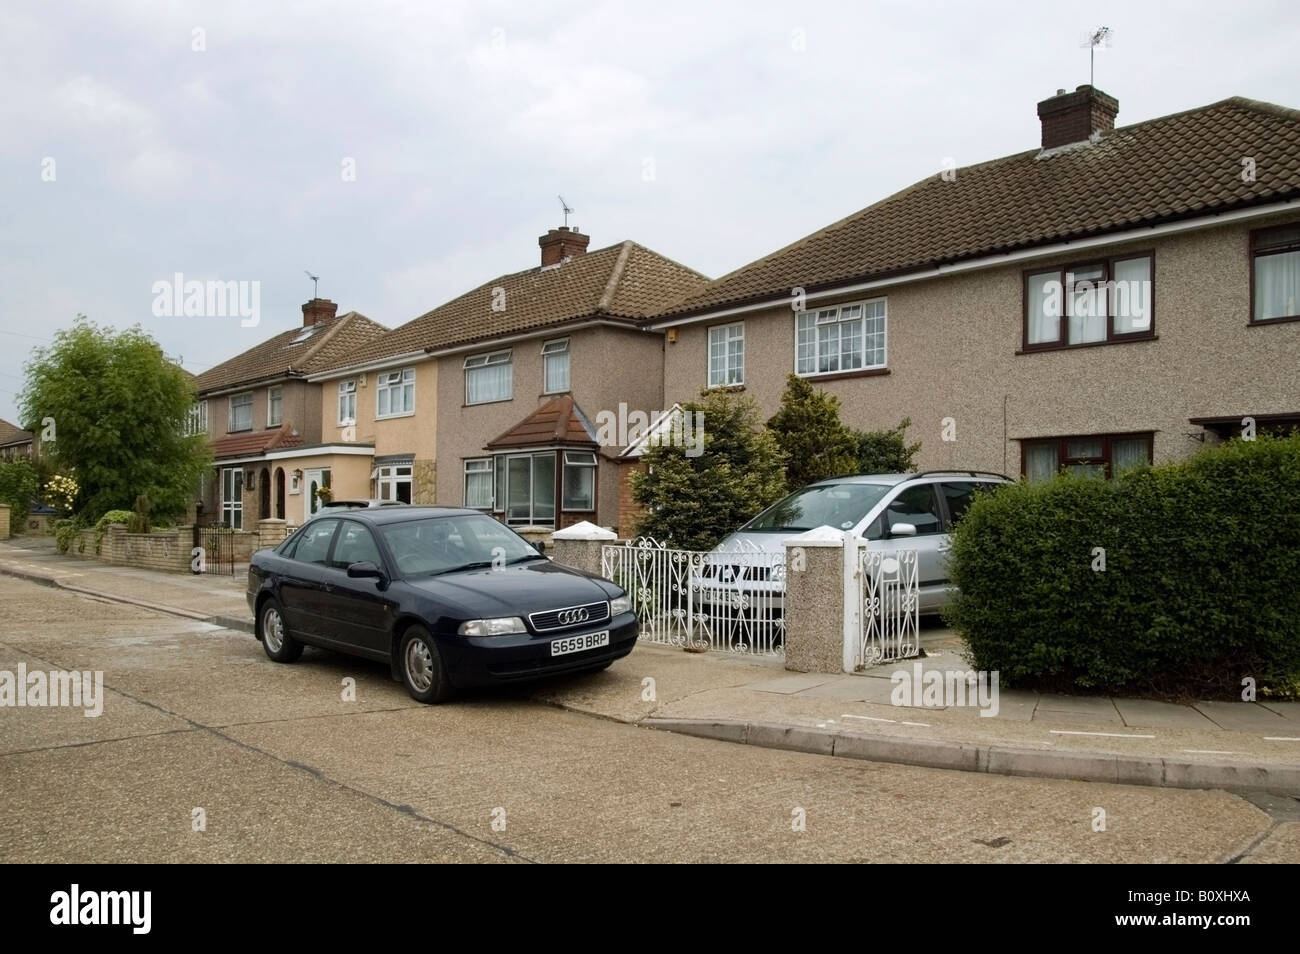 Row of residential street and semi-detached houses of 40s, 50s architecture, Collier Row, Romford, Essex, UK, GB, - Stock Image